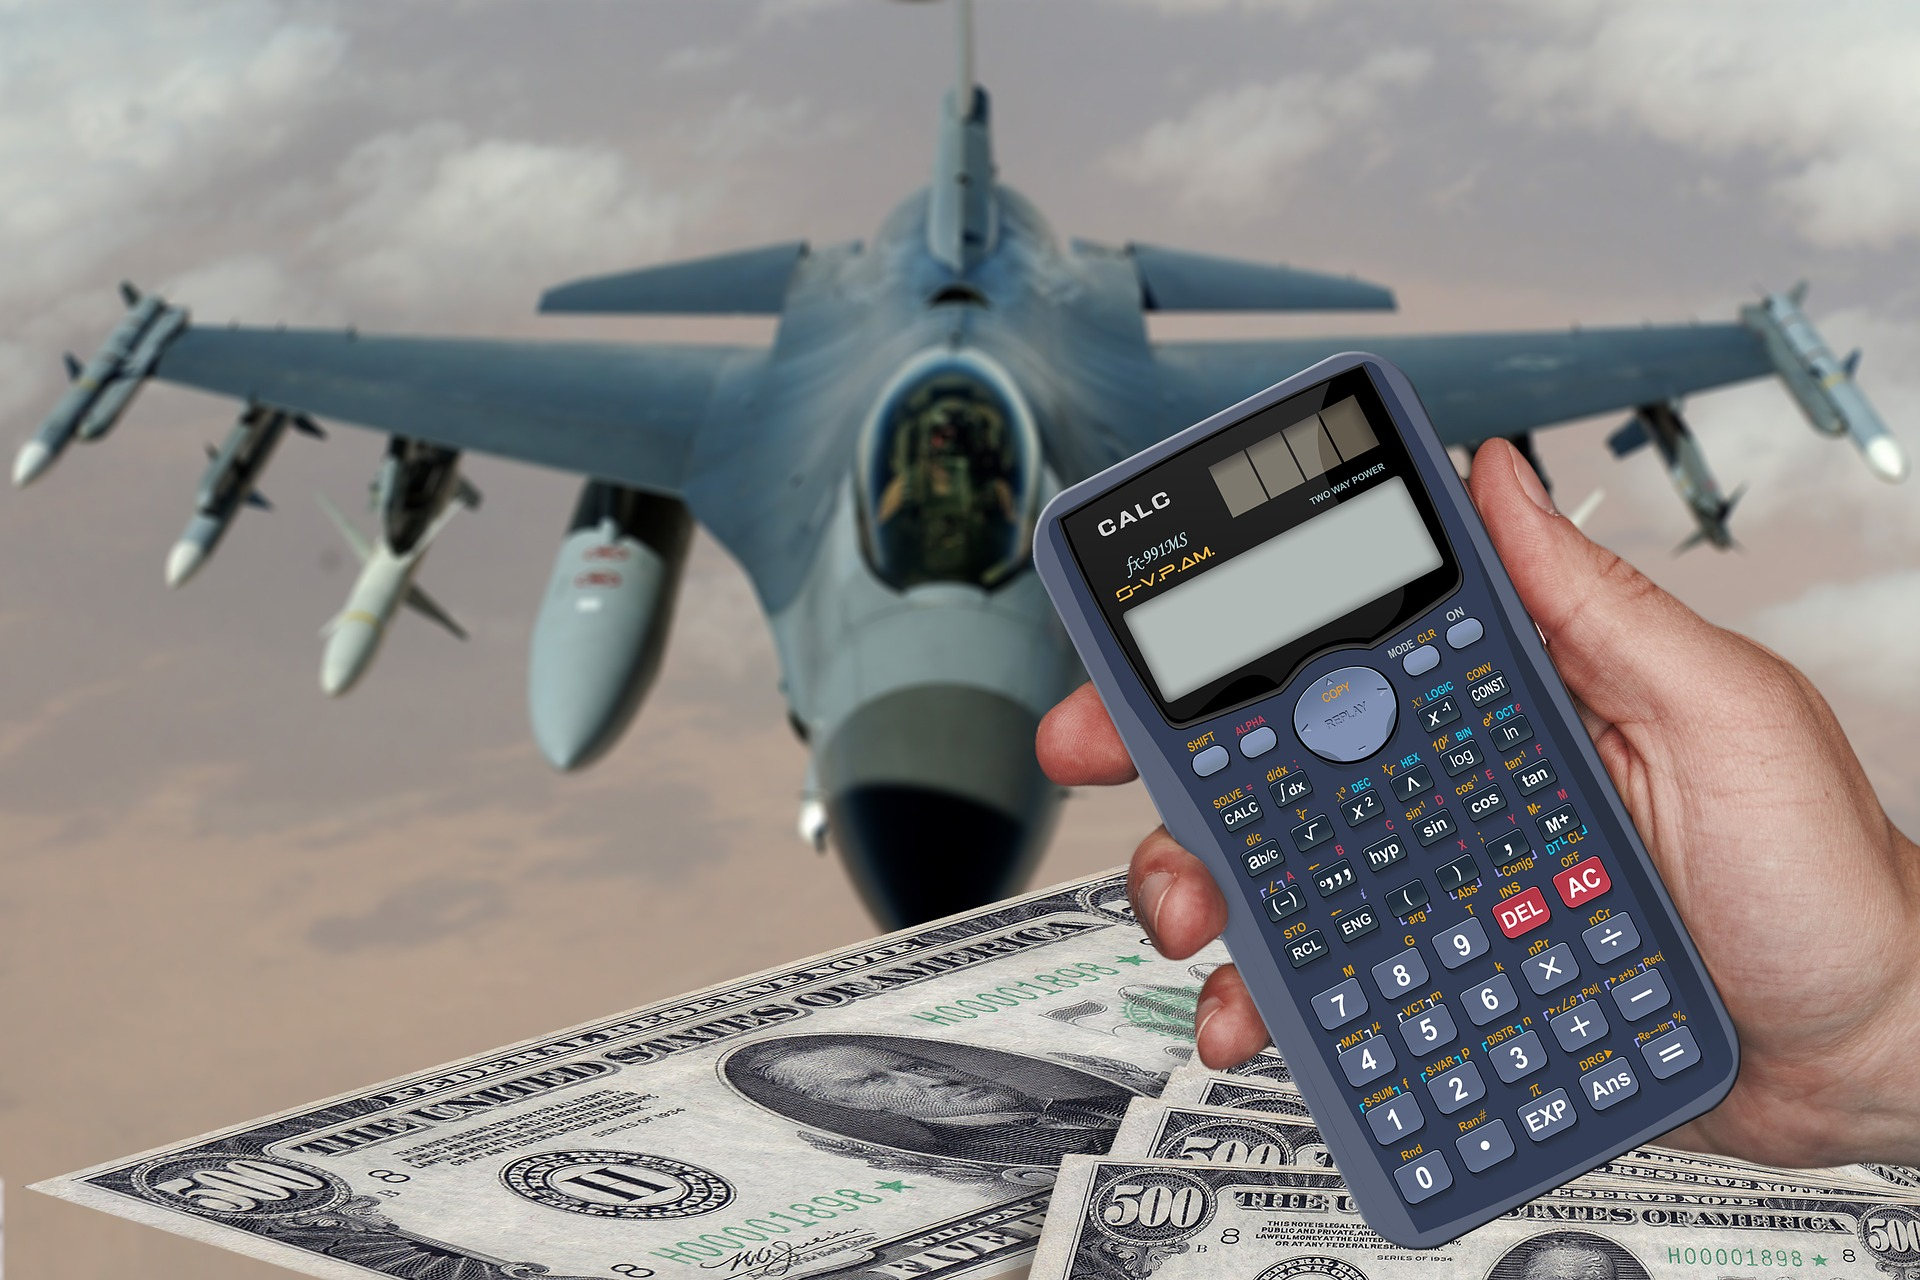 U.S. has spent $5.9 trillion on wars since 9/11, report says